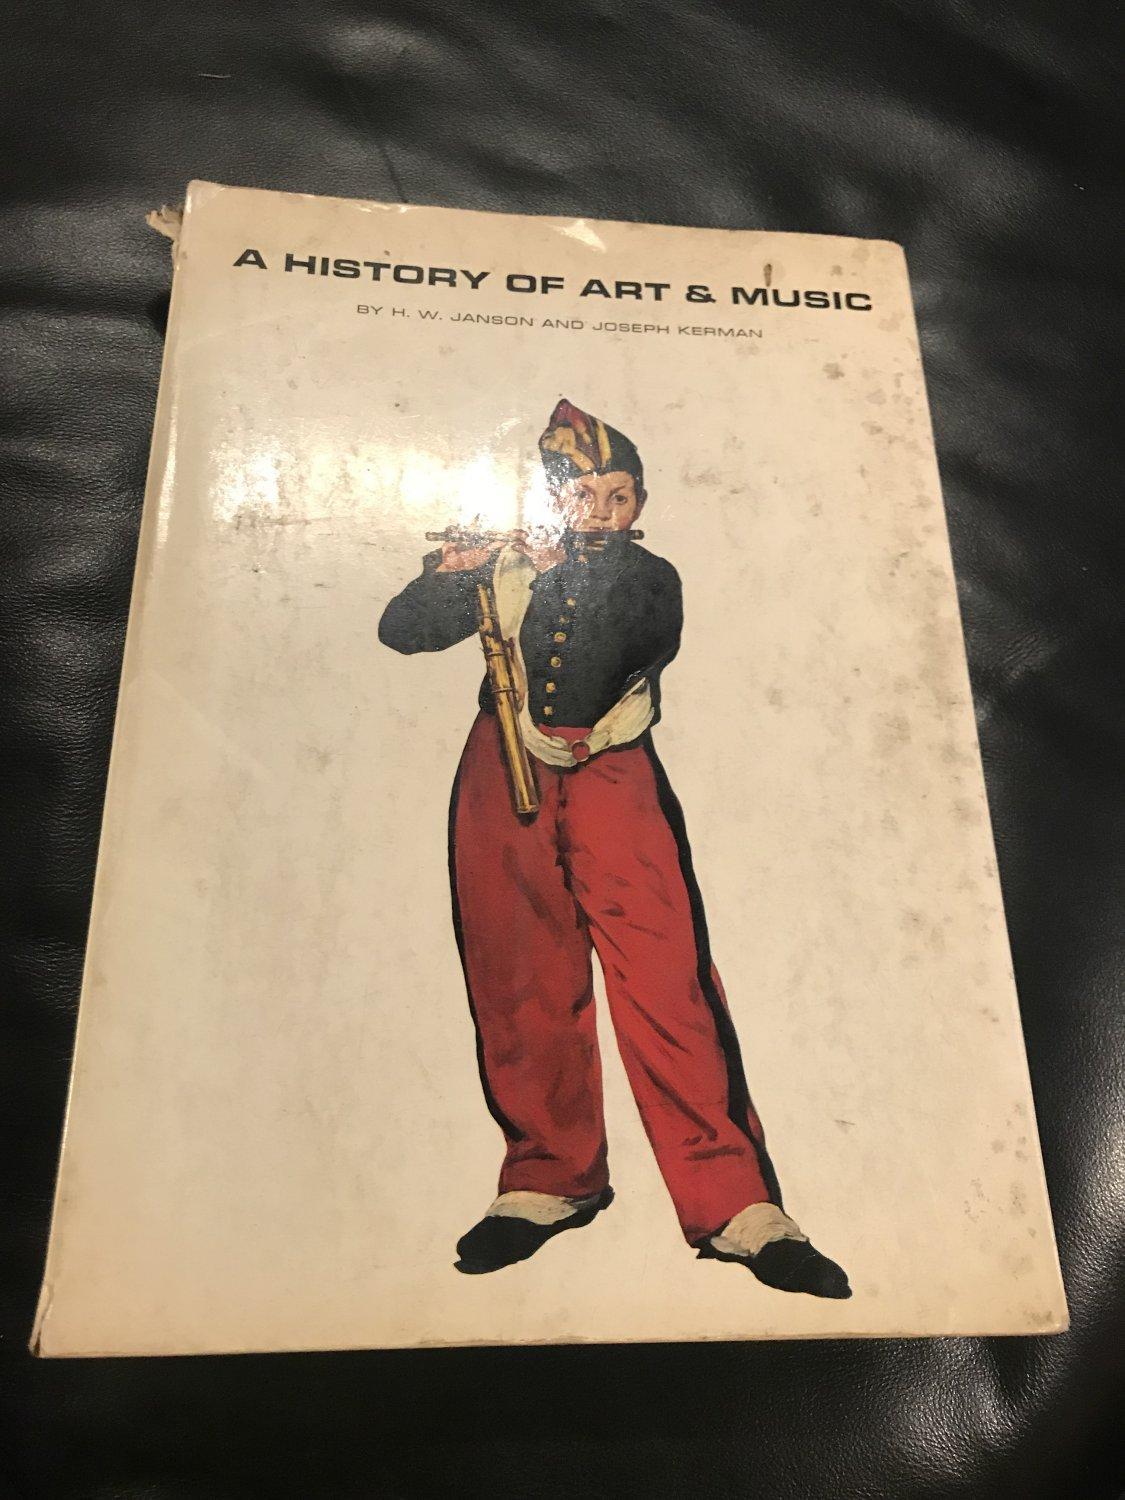 A History of Art and Music Edition Unstated Edition by H. W. Janson